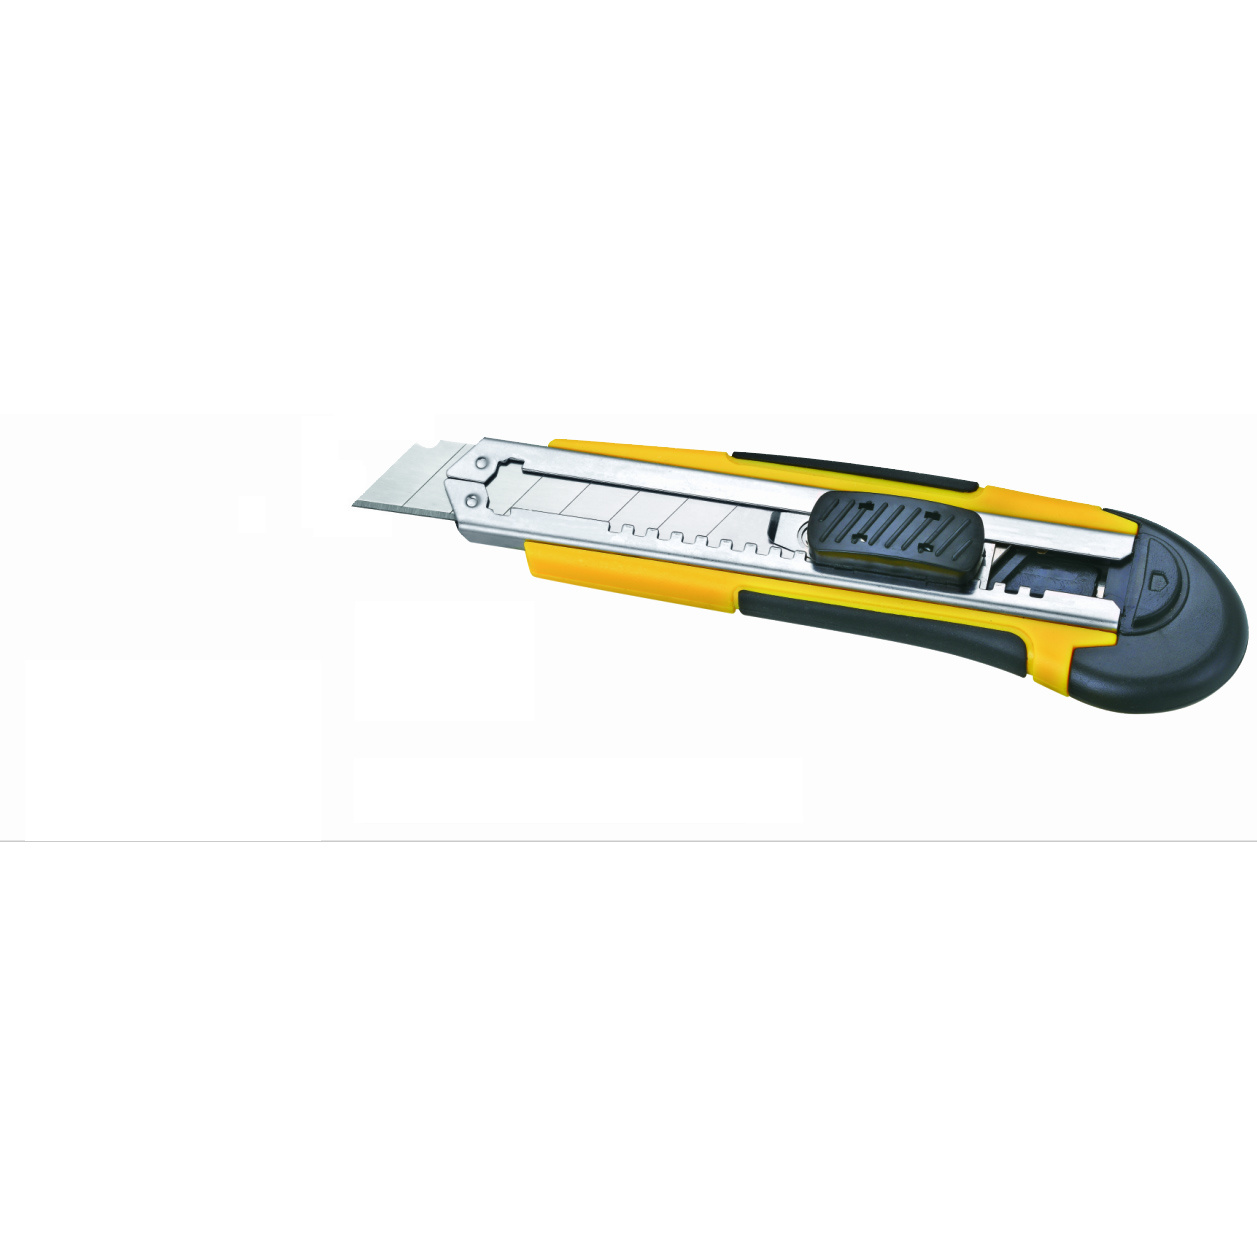 Auto-Loading Utility Knife (NC29)